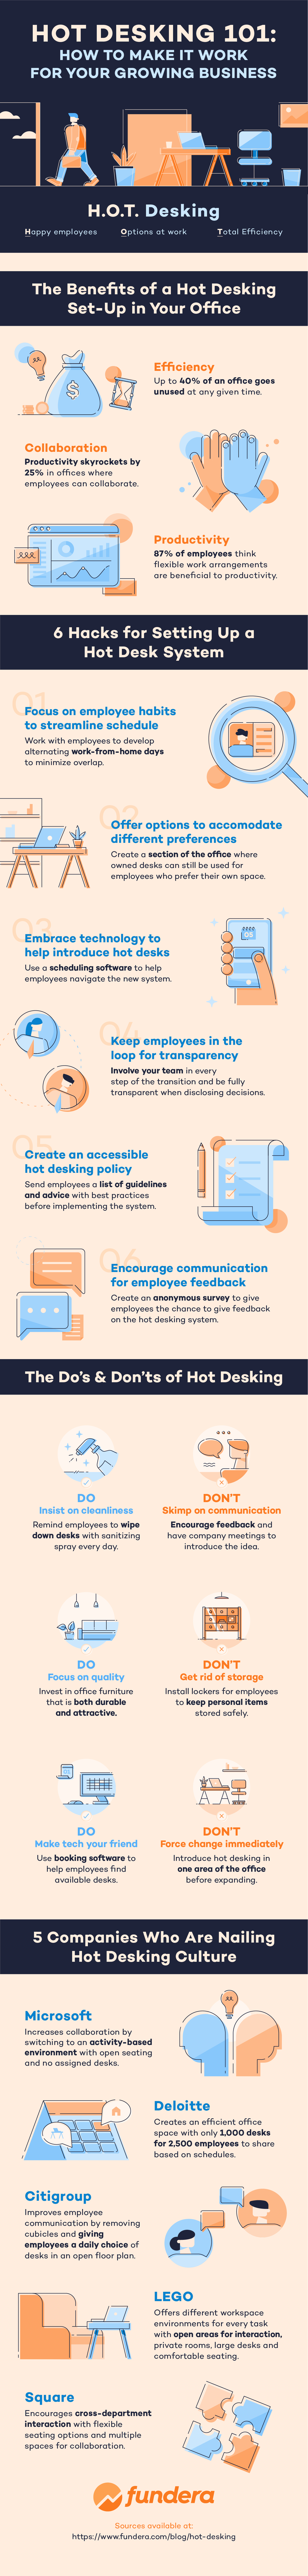 infographic-hot-desking